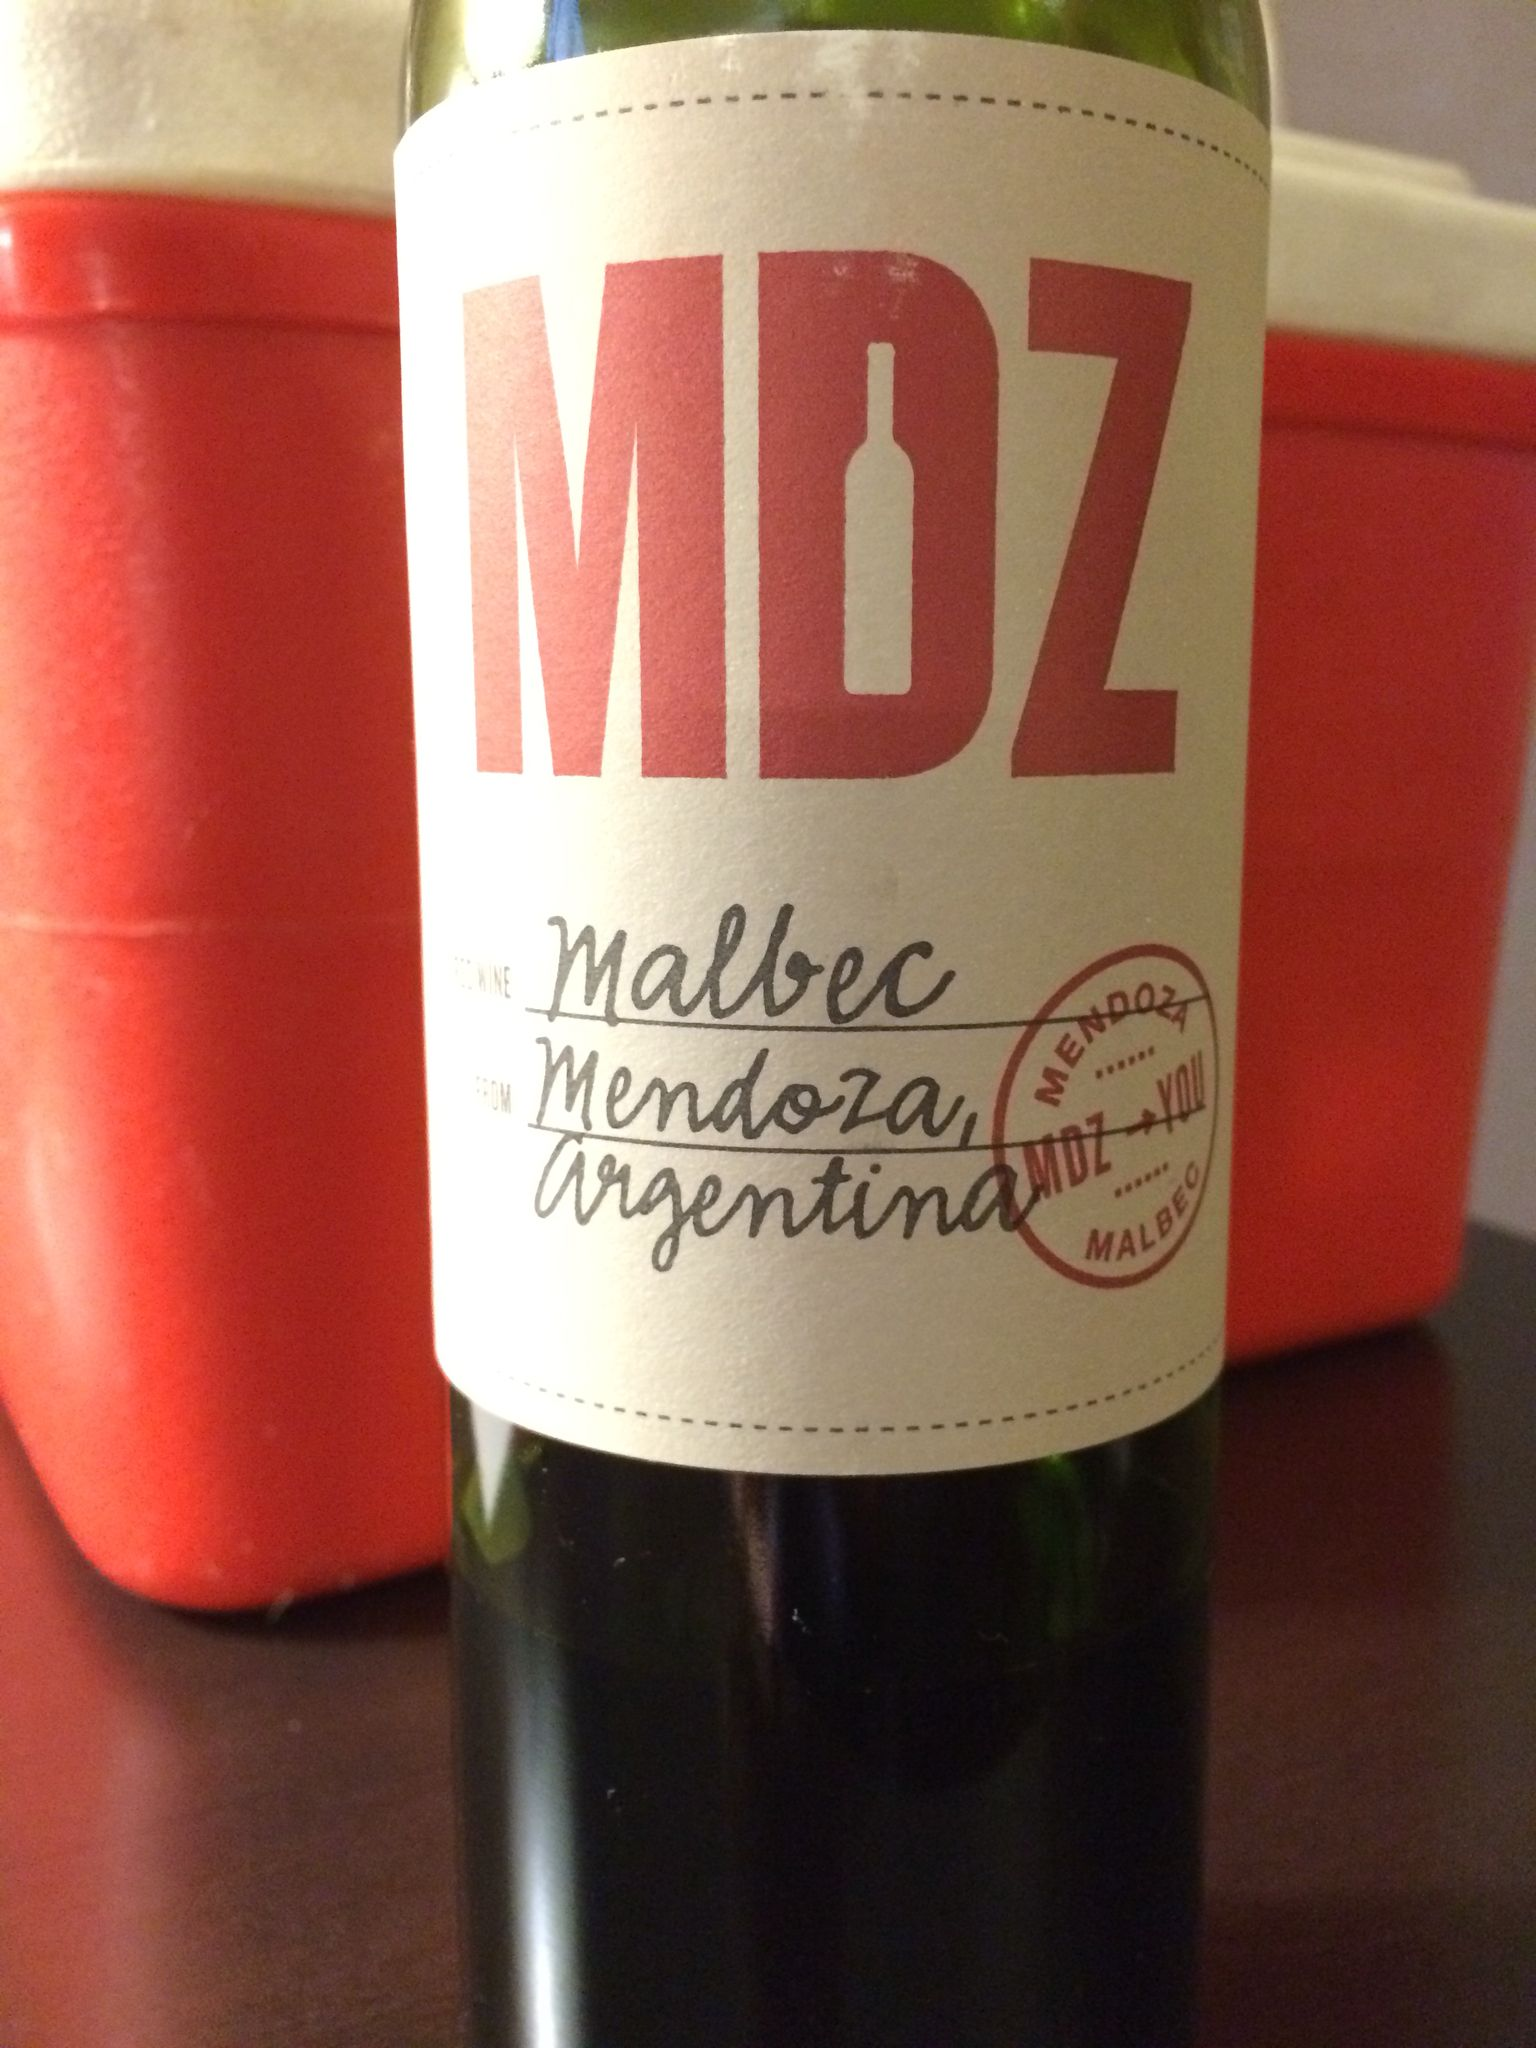 Mdz Malbec Argentina Malbec Wines Wine Bottle